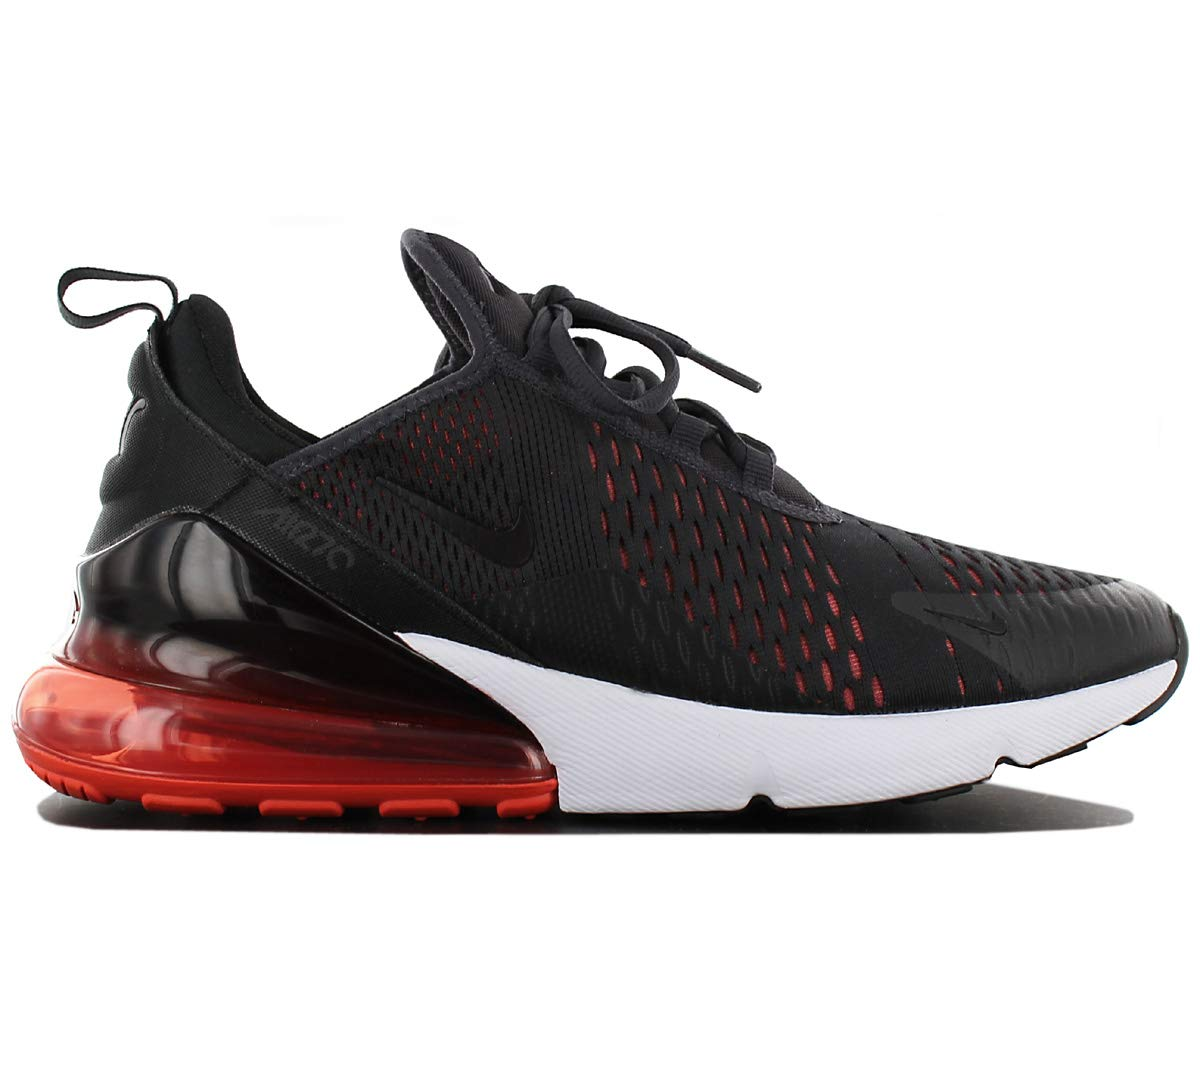 dcf716df3bcc9 Galleon - Nike Air Max 270 AH8050-013 Oil Grey/Habanero Red/Black Men's  Running Shoes (11.5)